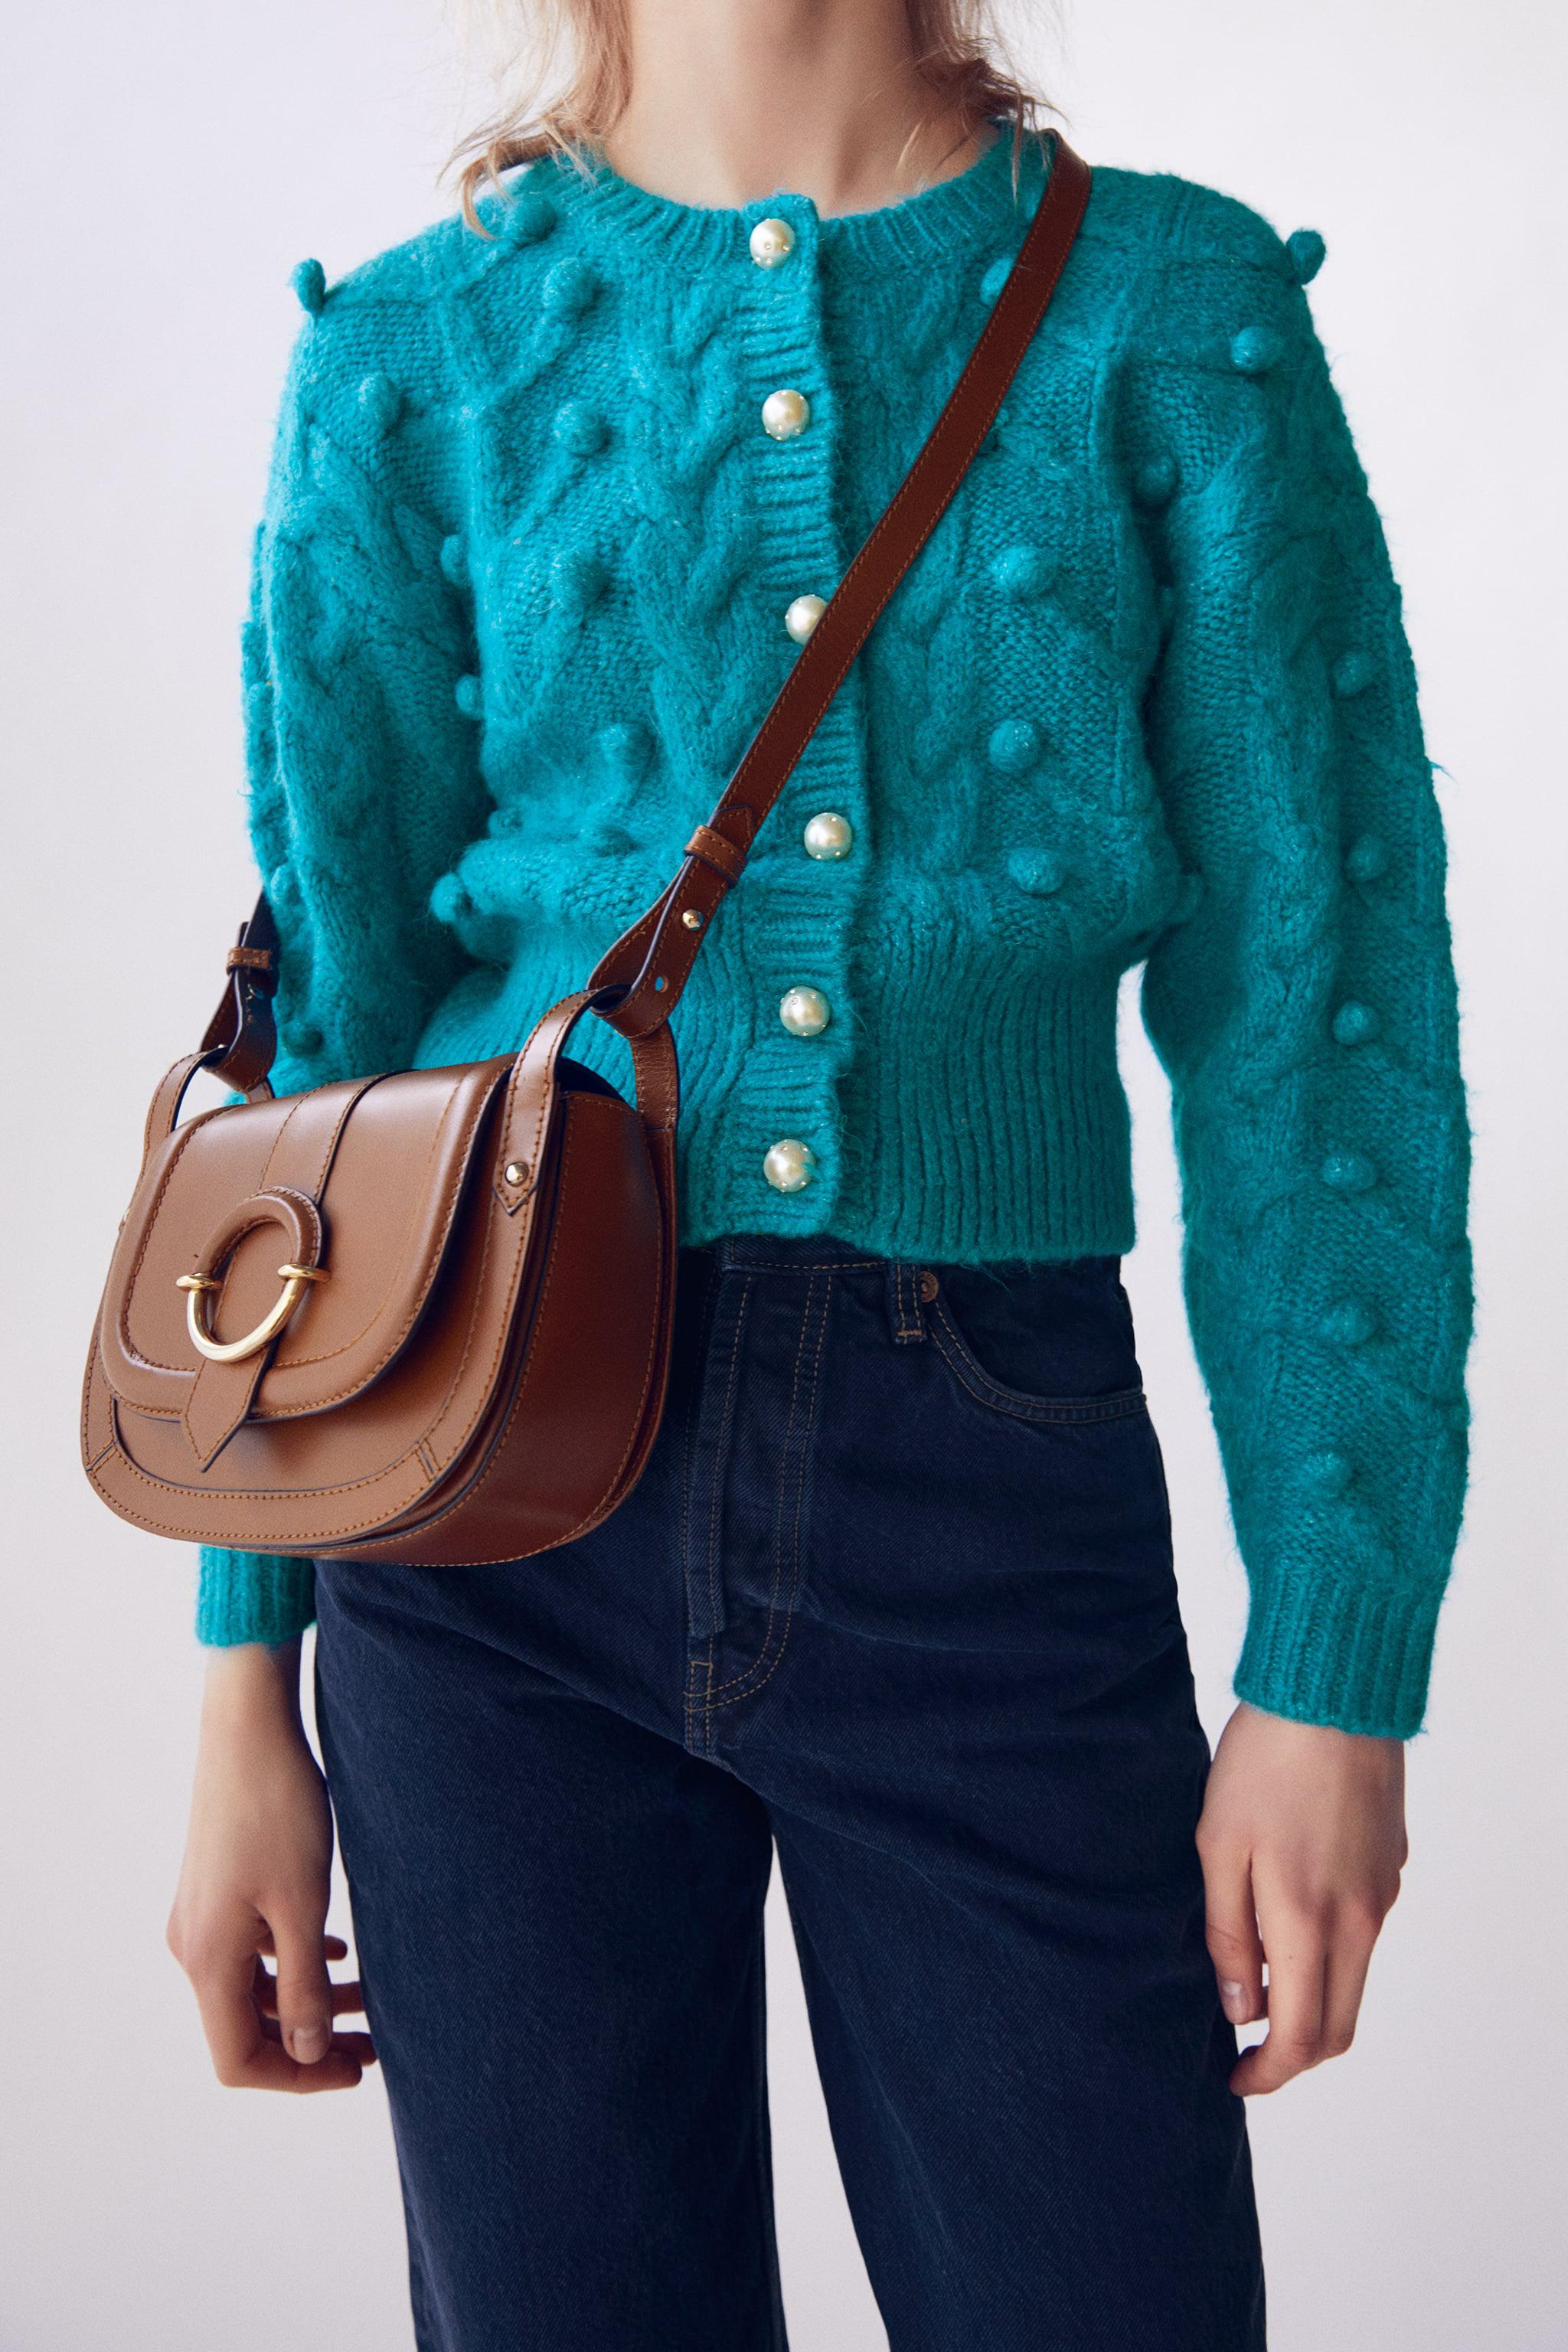 OVAL LEATHER CROSSBODY BAG WITH BUCKLE